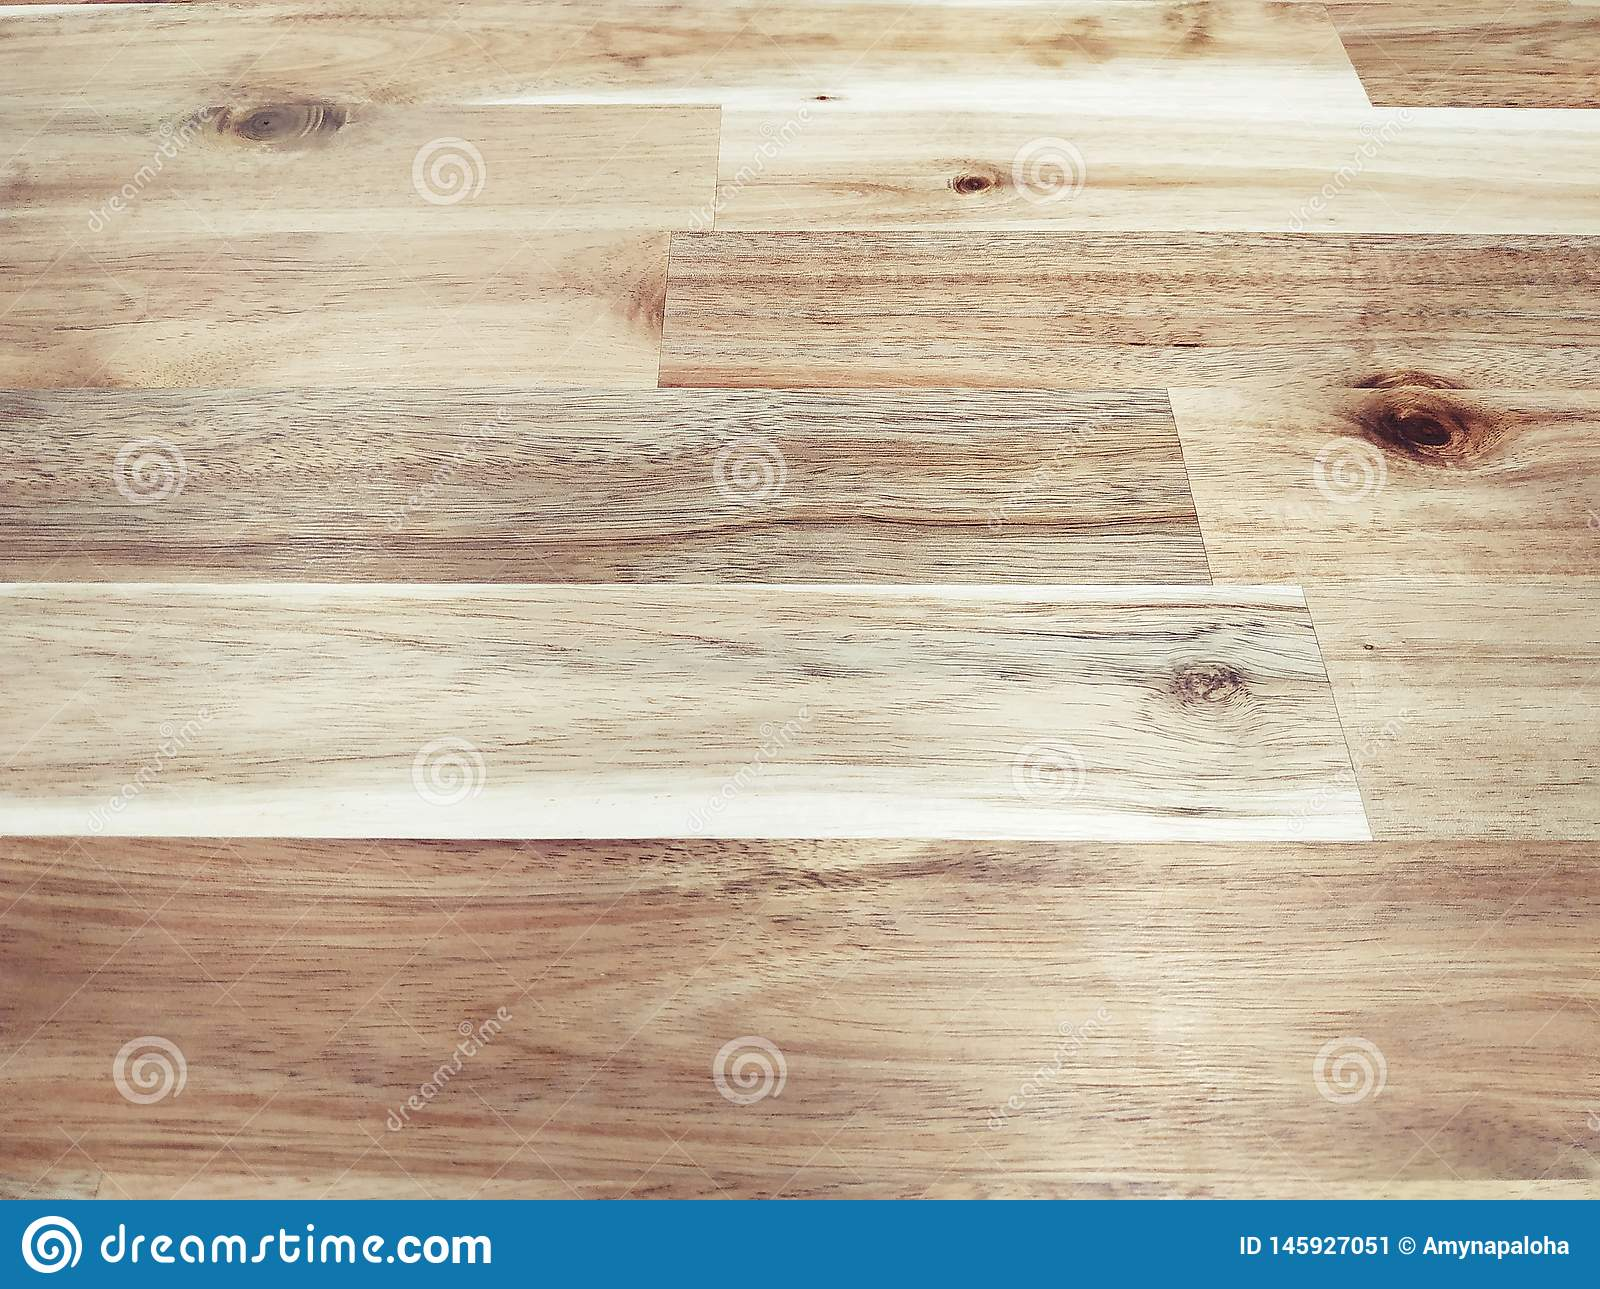 Wood wall surface empty texture background for design and decoration